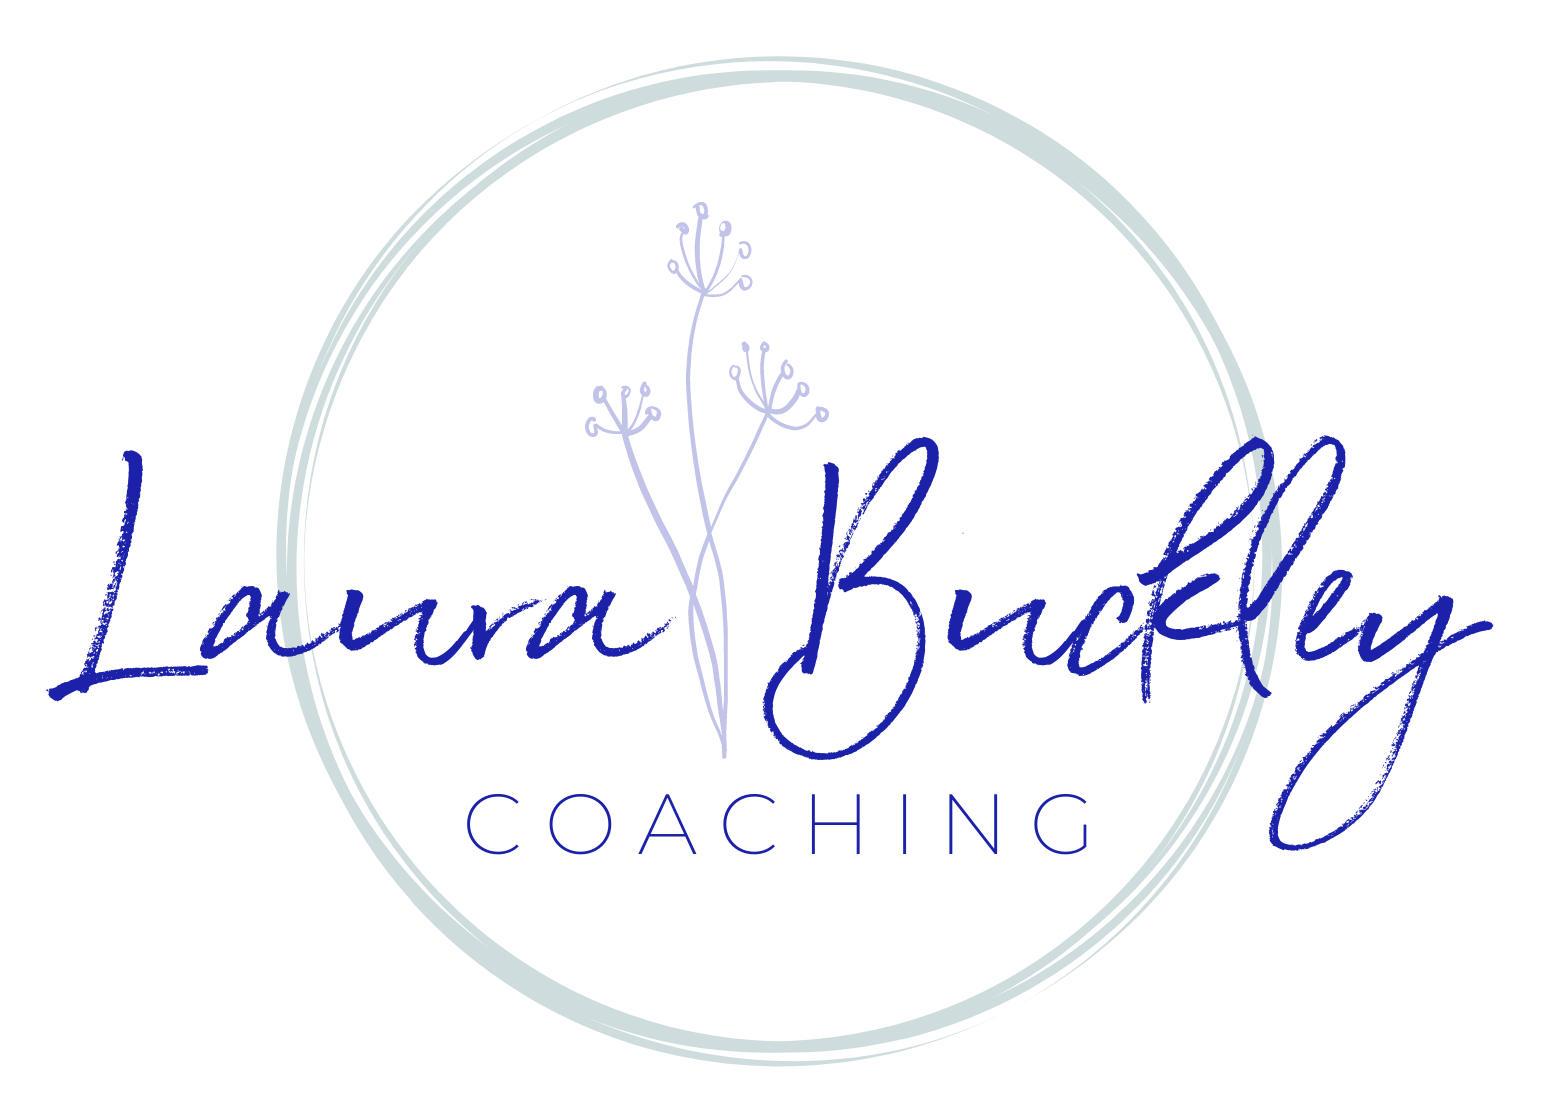 Laura Buckley Coaching